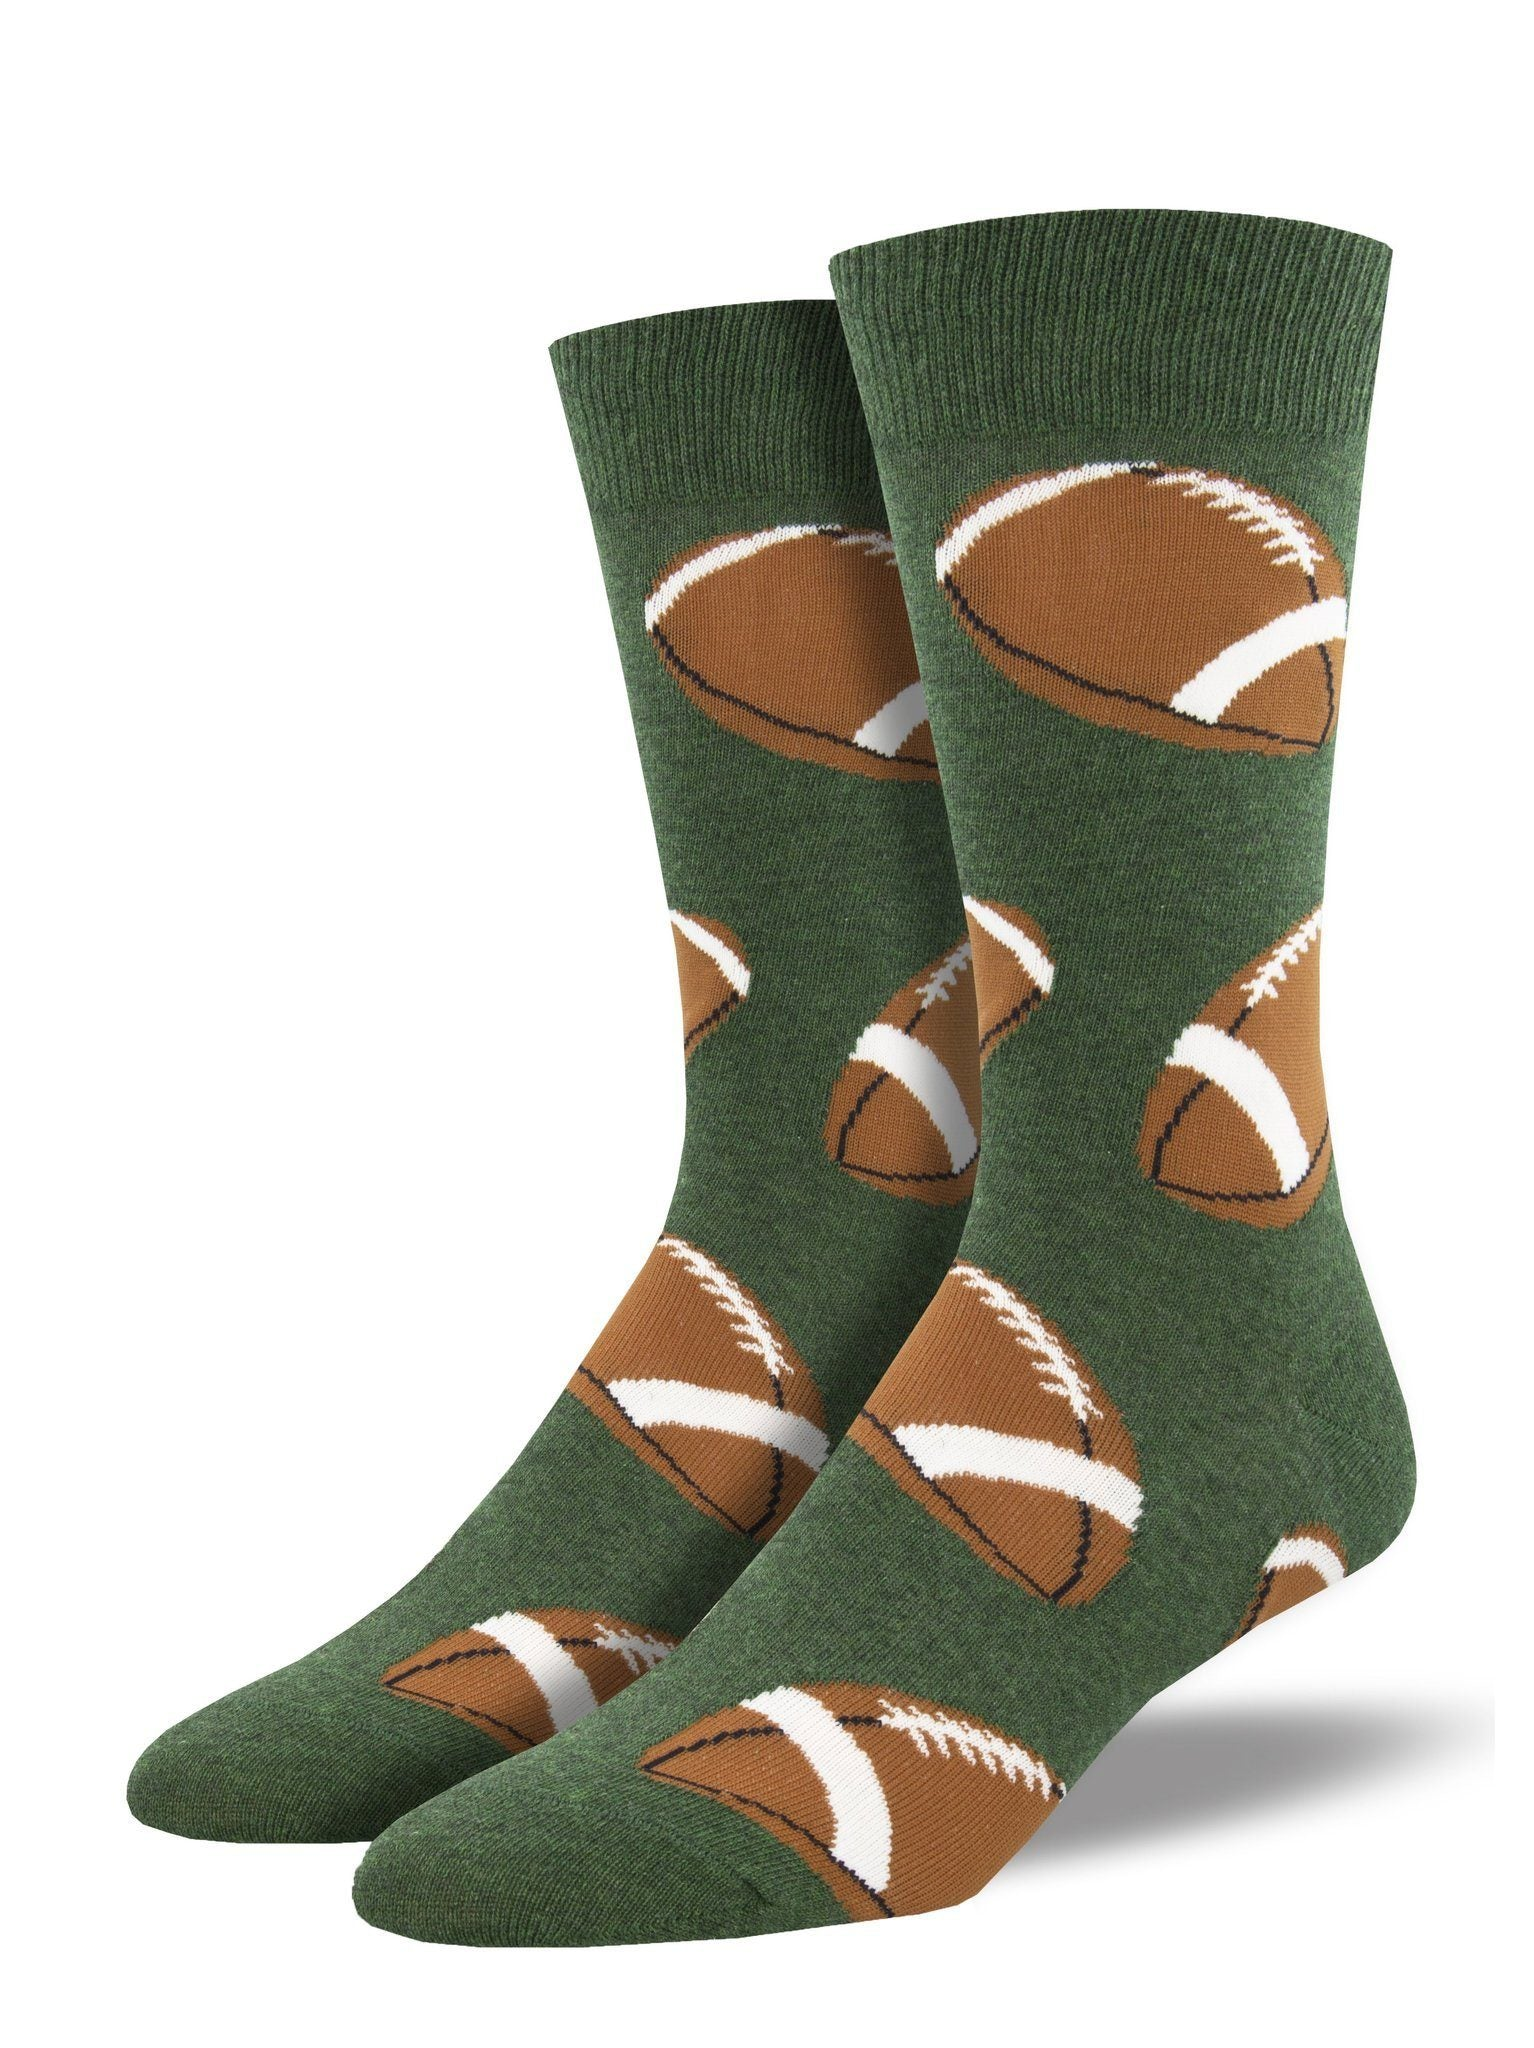 Socksmith - Pigskin Football Crew Socks | Men's - Knock Your Socks Off